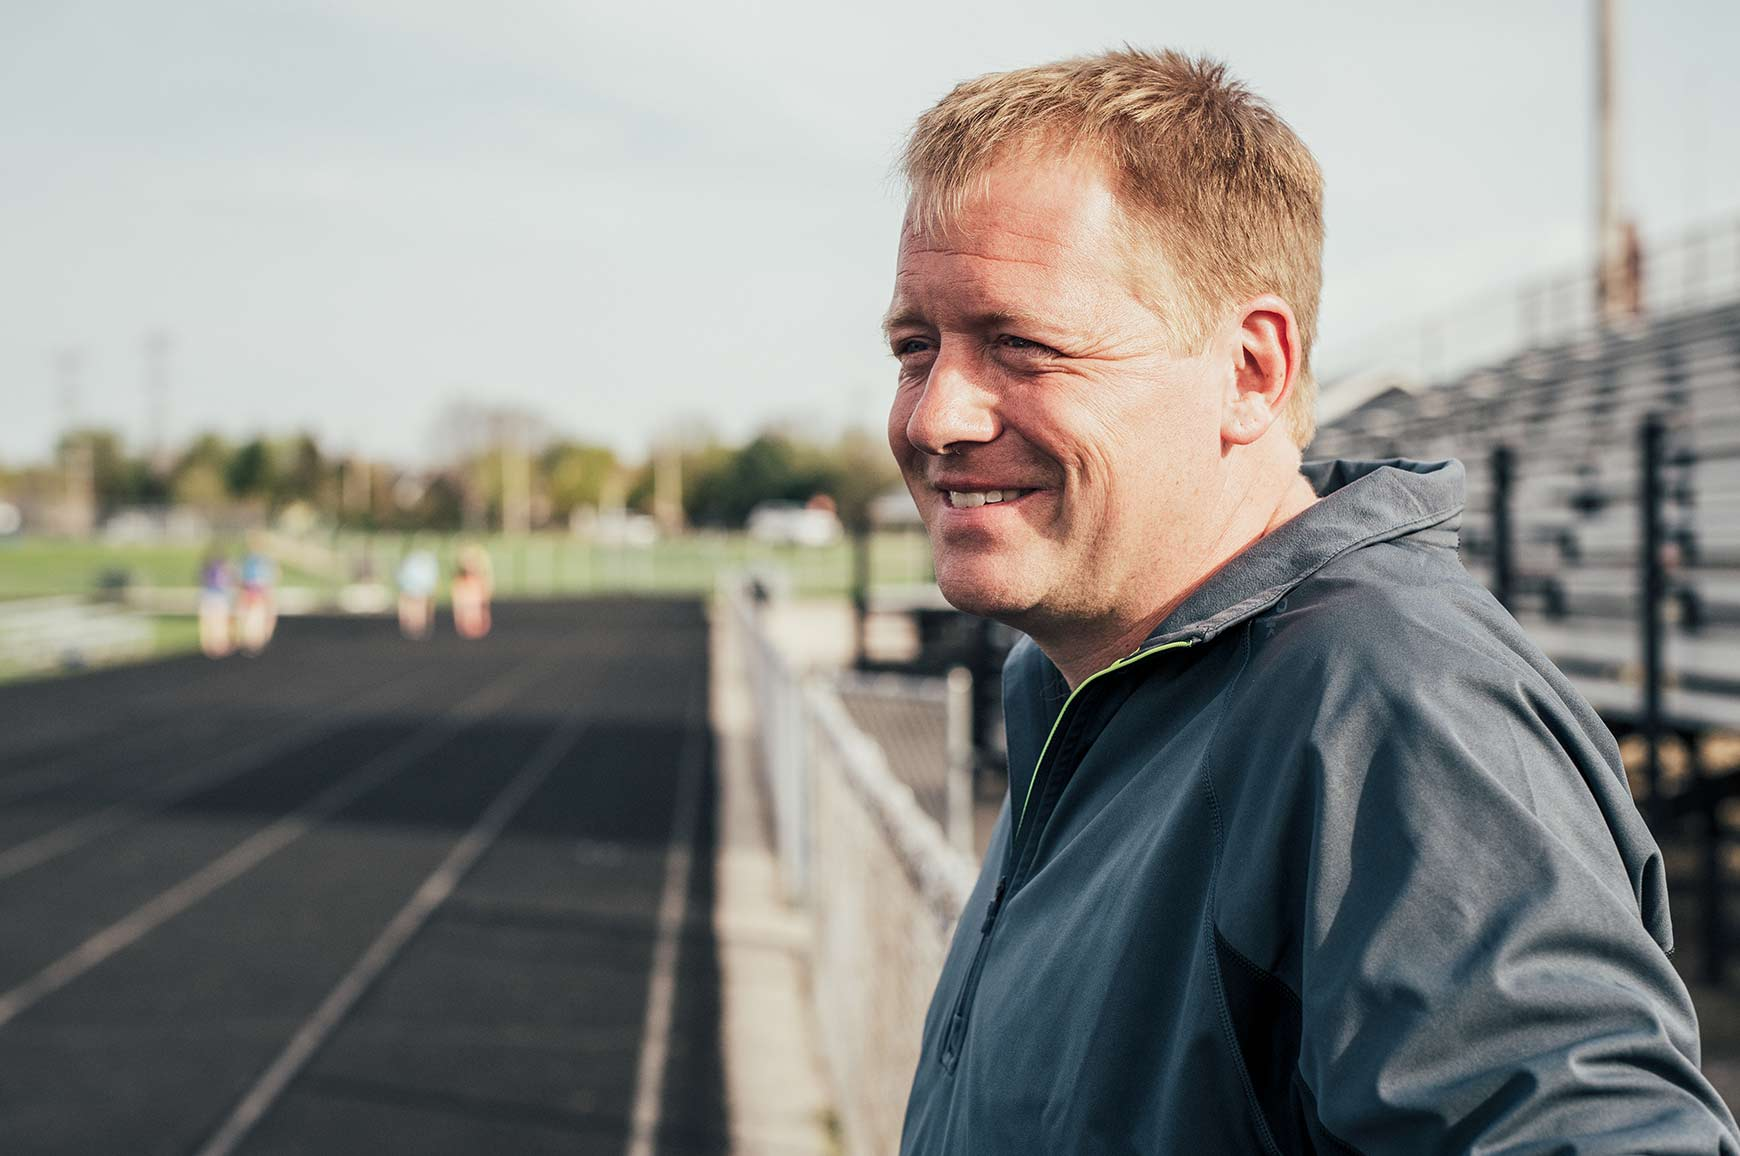 Mark Anderson from the side, smiling; behind him is a track